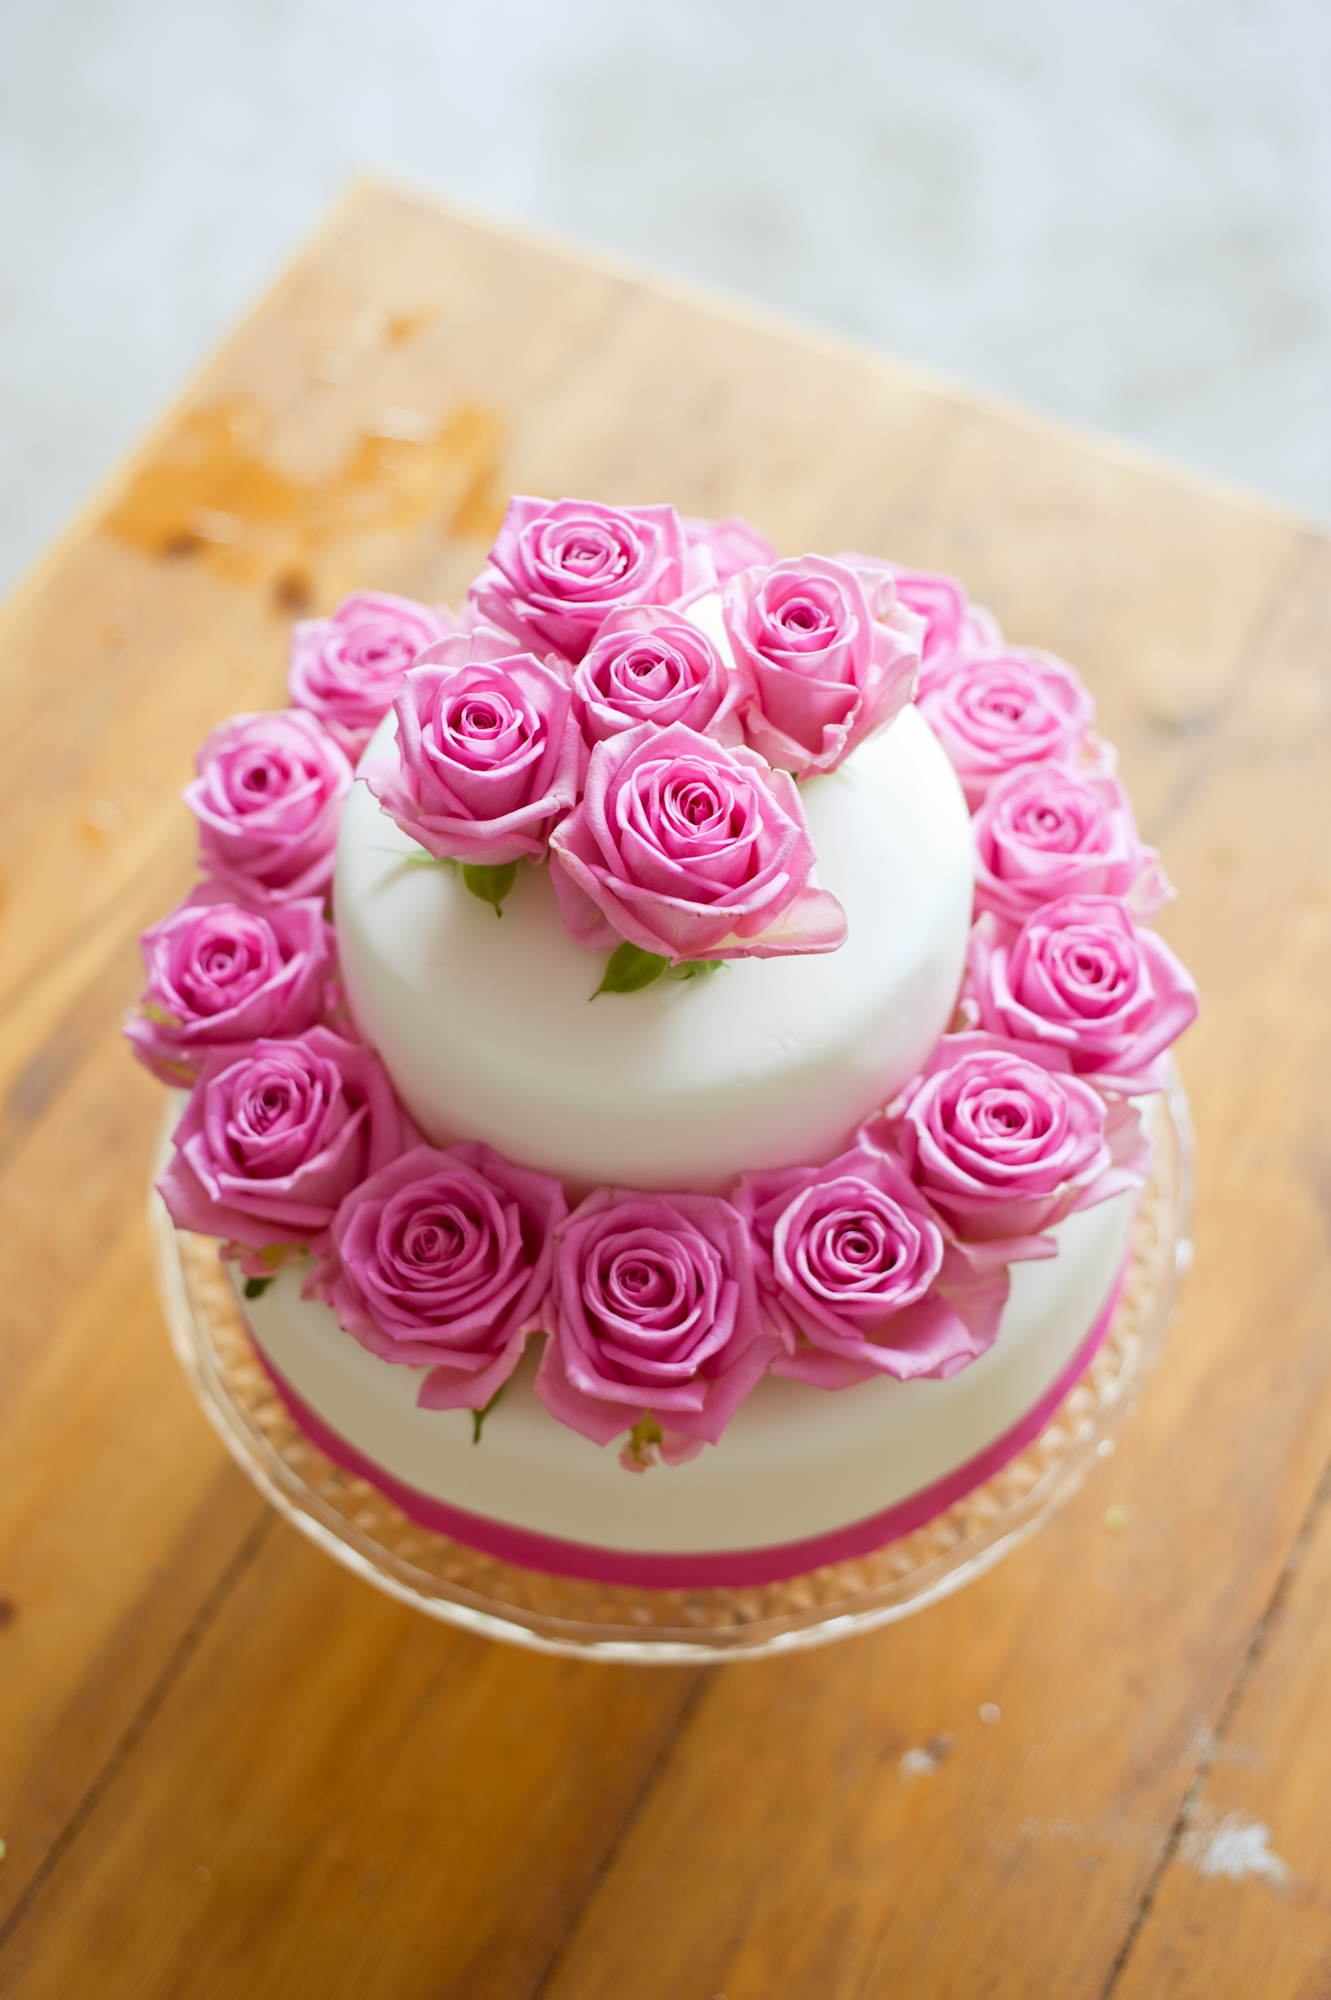 Flower cakes decoration ideas little birthday cakes cake flowers izmirmasajfo